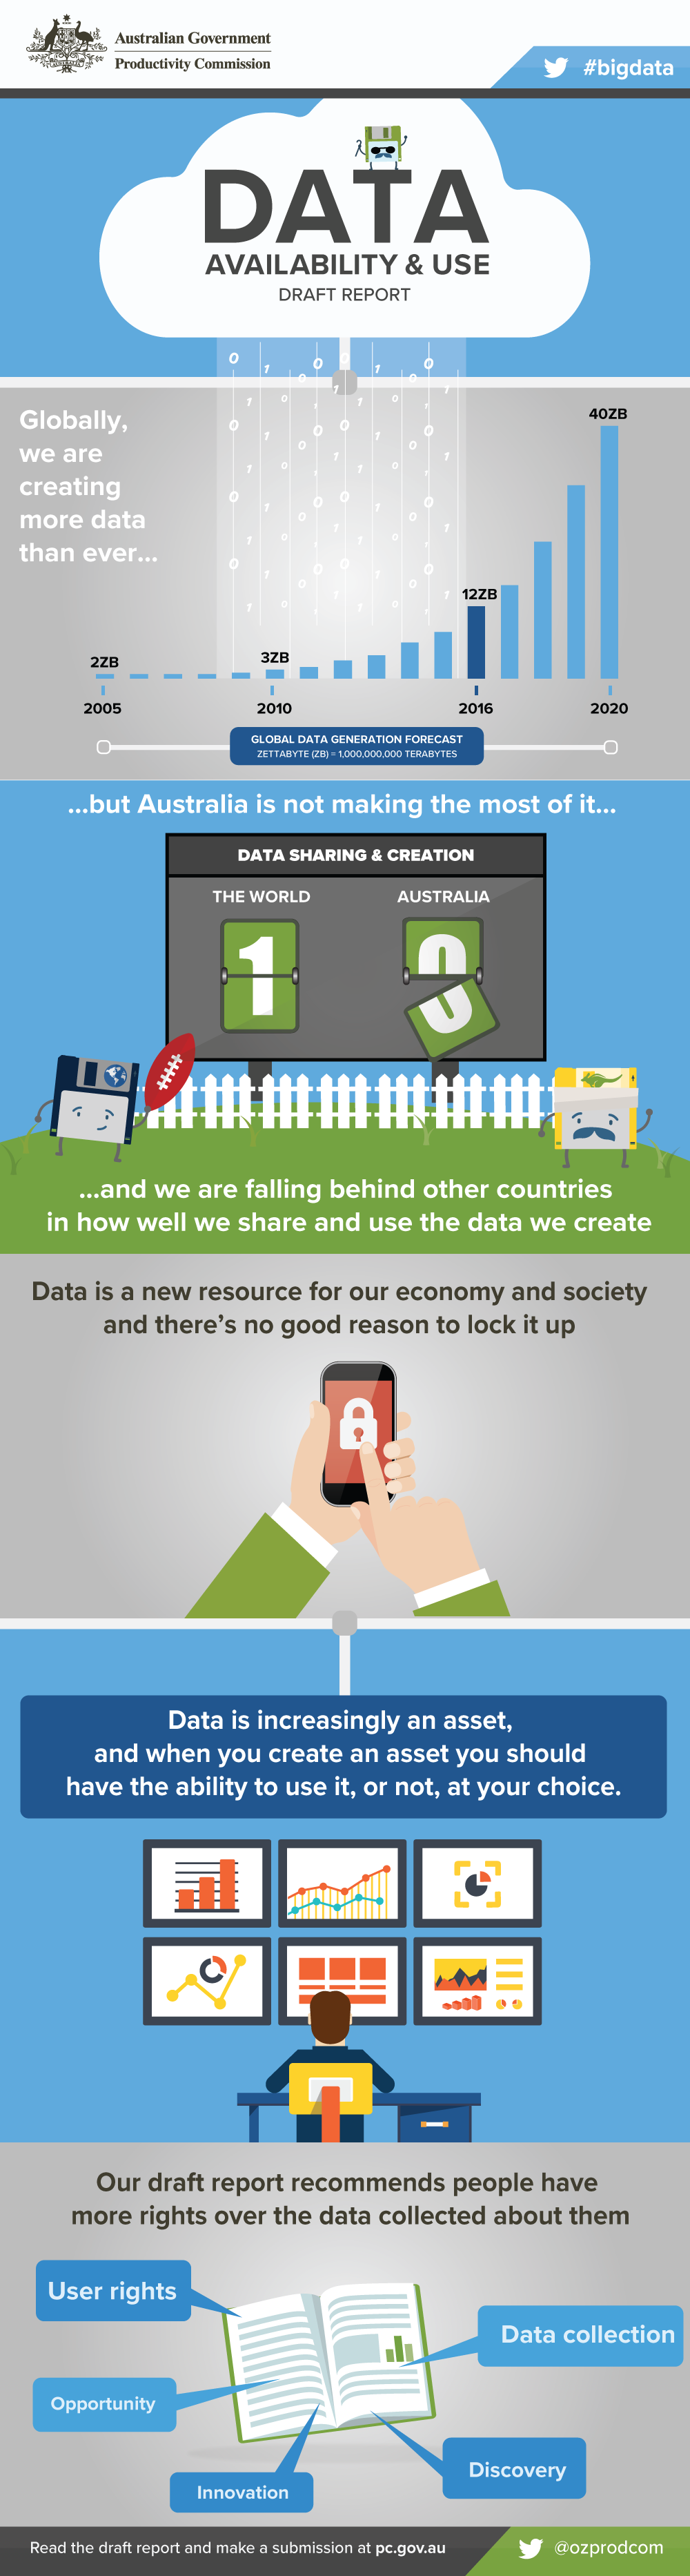 Data Availability and Use - Draft Report infographic. Text version follows.